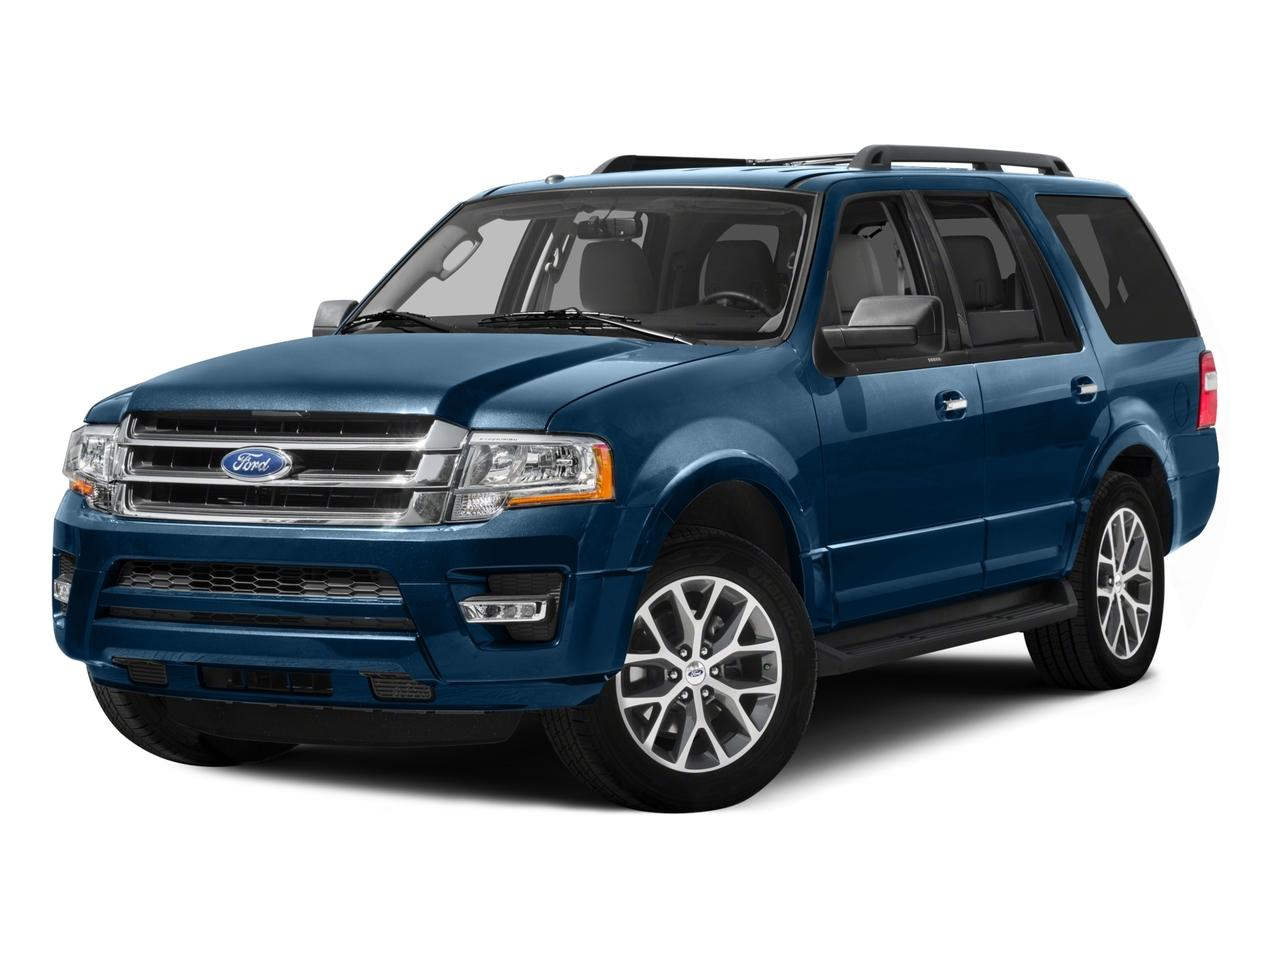 2015 Ford Expedition Vehicle Photo in LAFAYETTE, LA 70503-4541